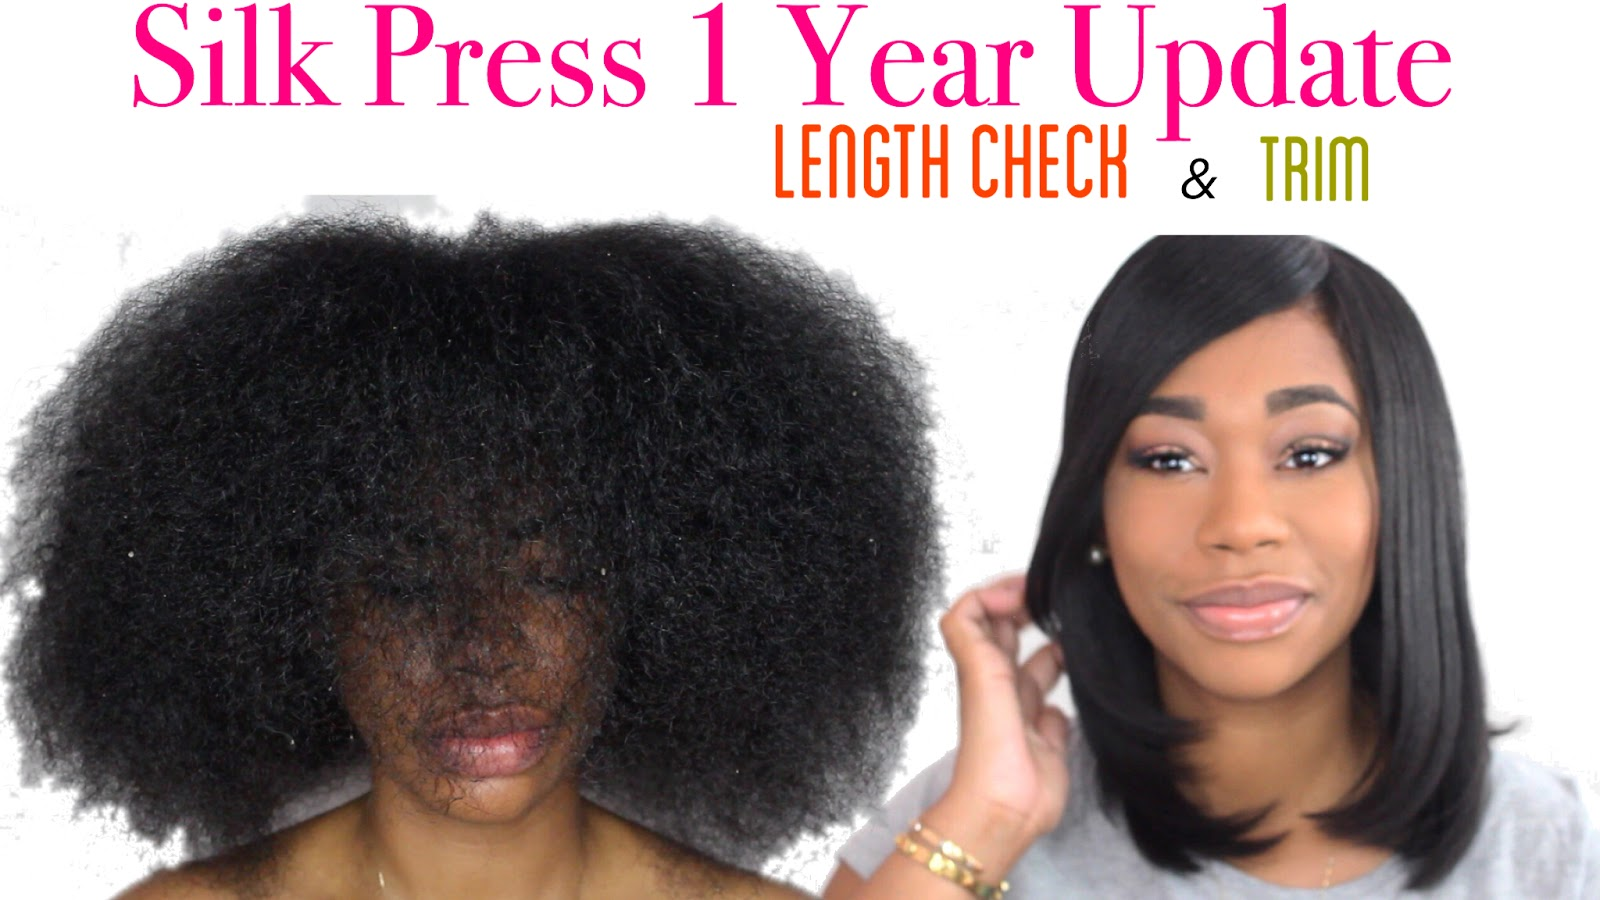 Discussion on this topic: How to Silk Press Natural Hair, how-to-silk-press-natural-hair/